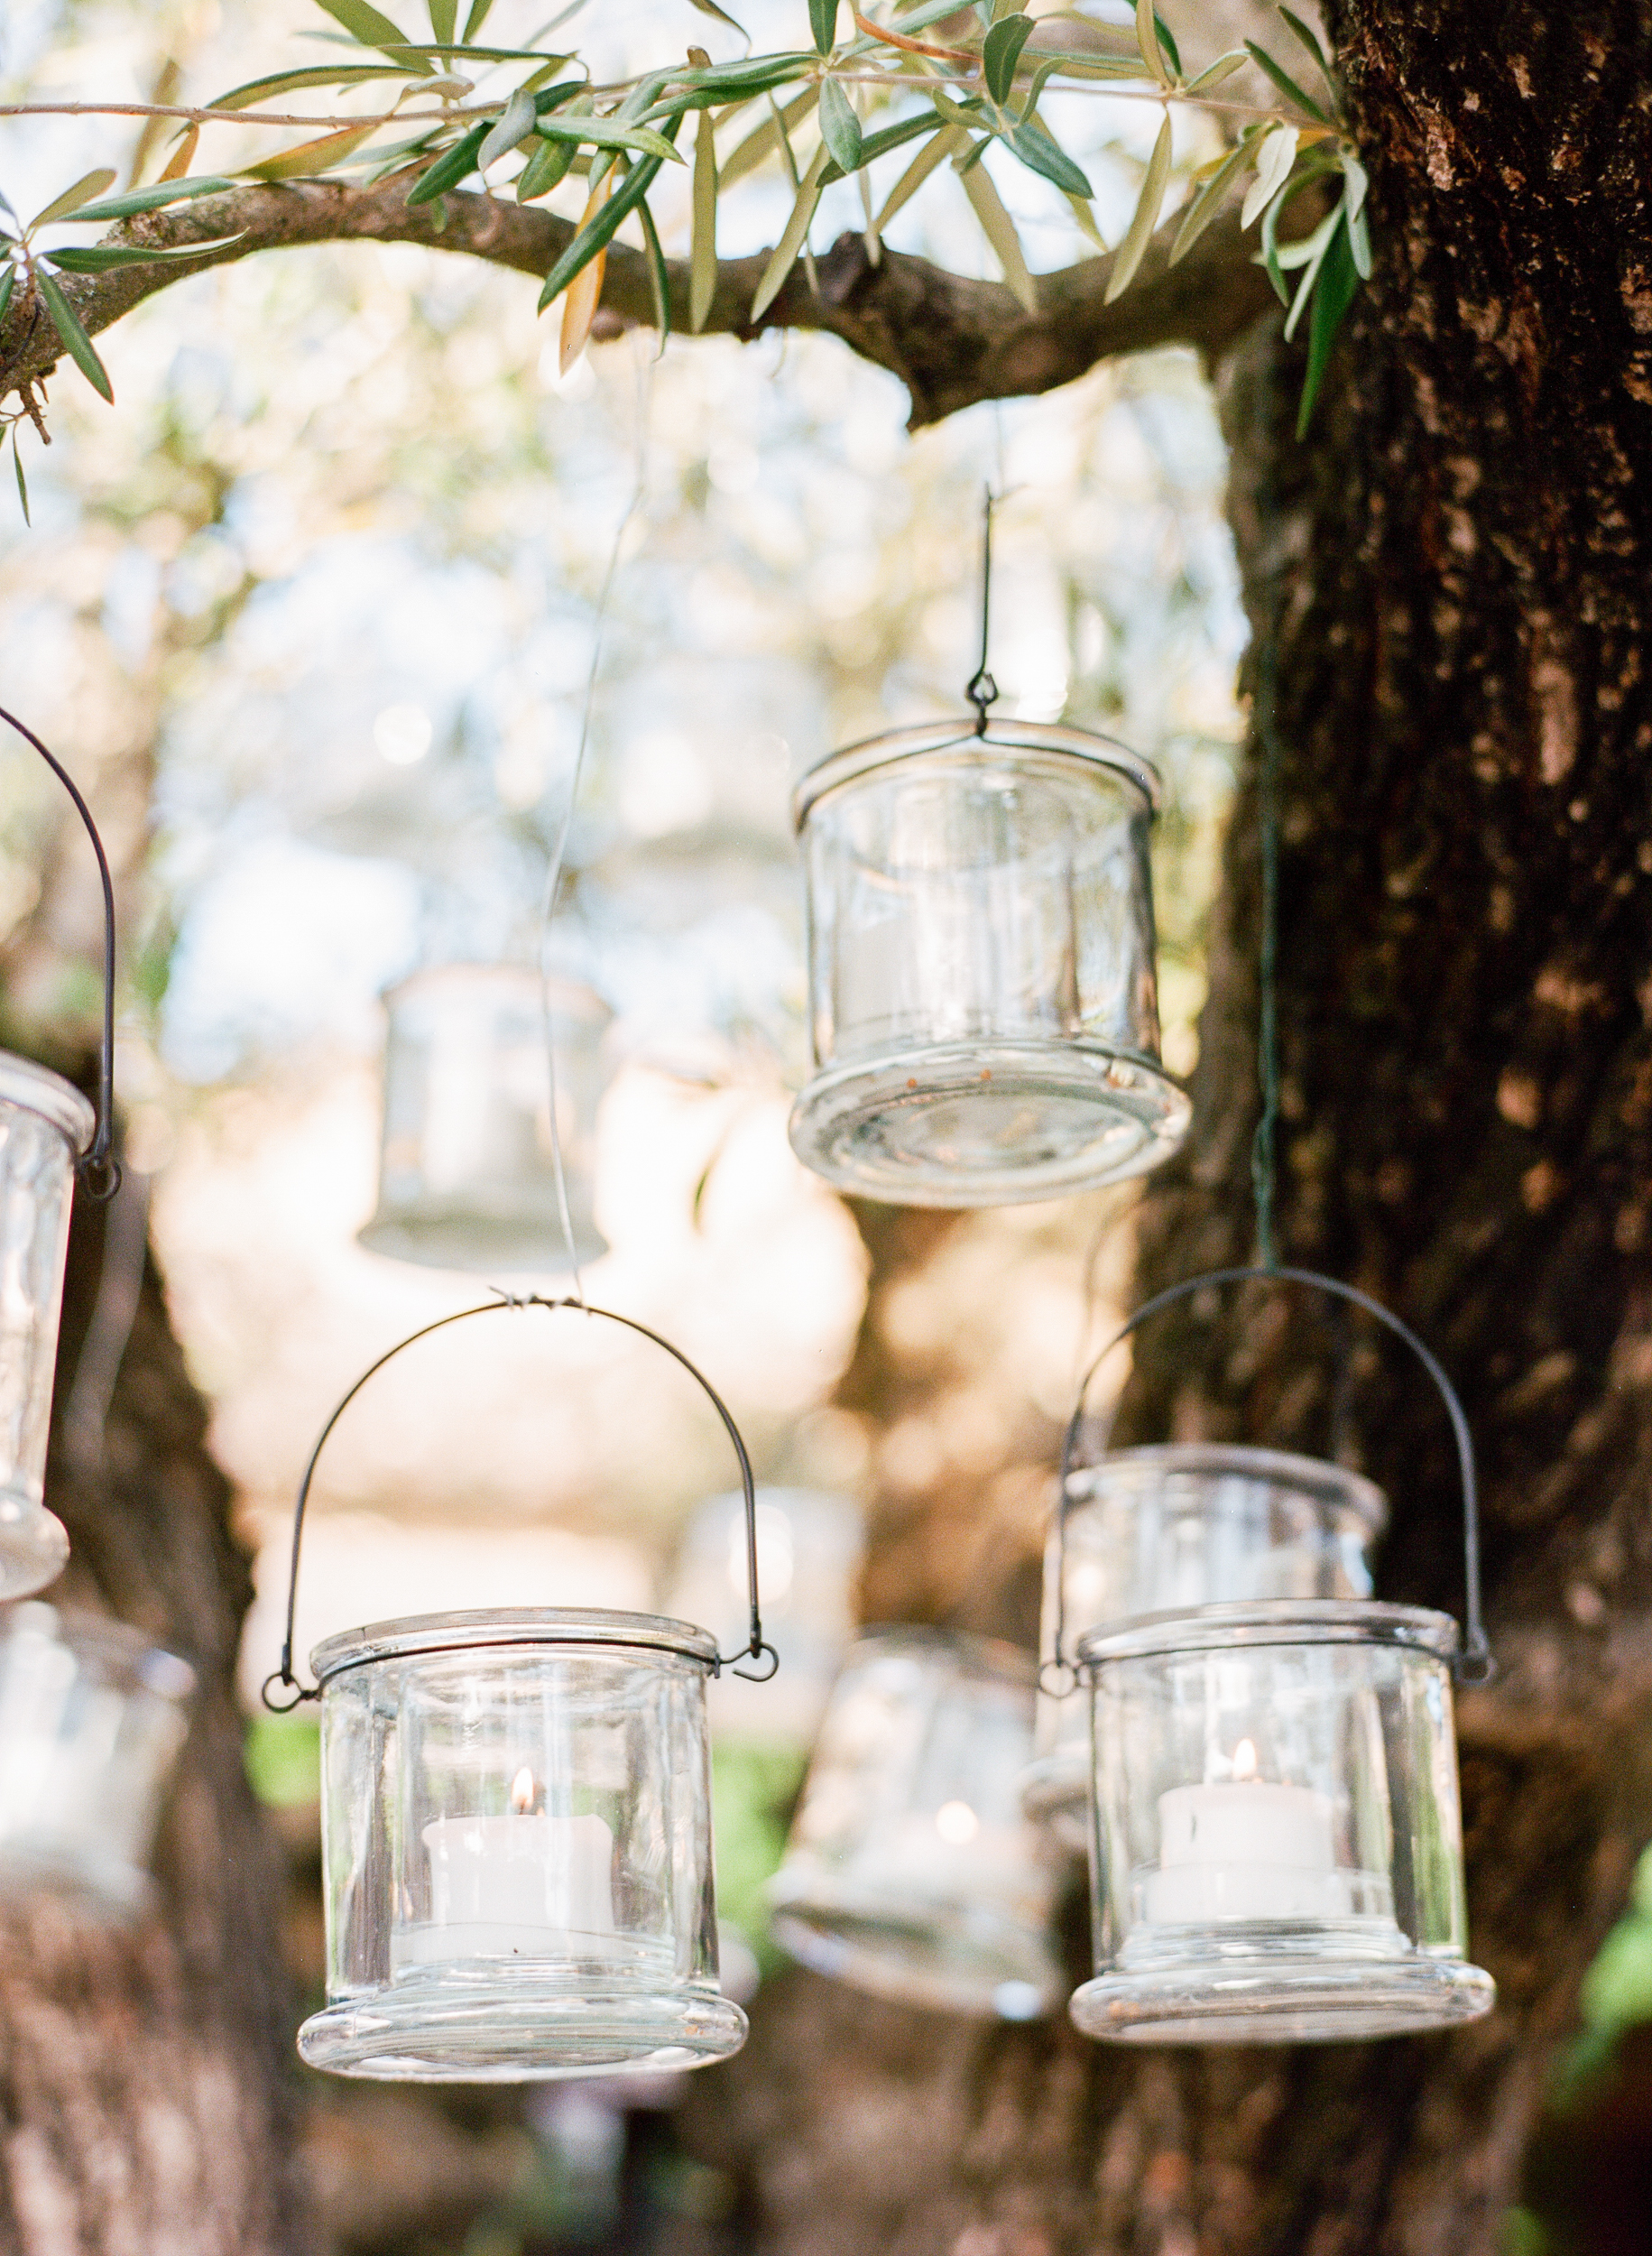 Votive candles hang from the olive trees in the outdoor reception courtyard; photo by Sylvie Gil